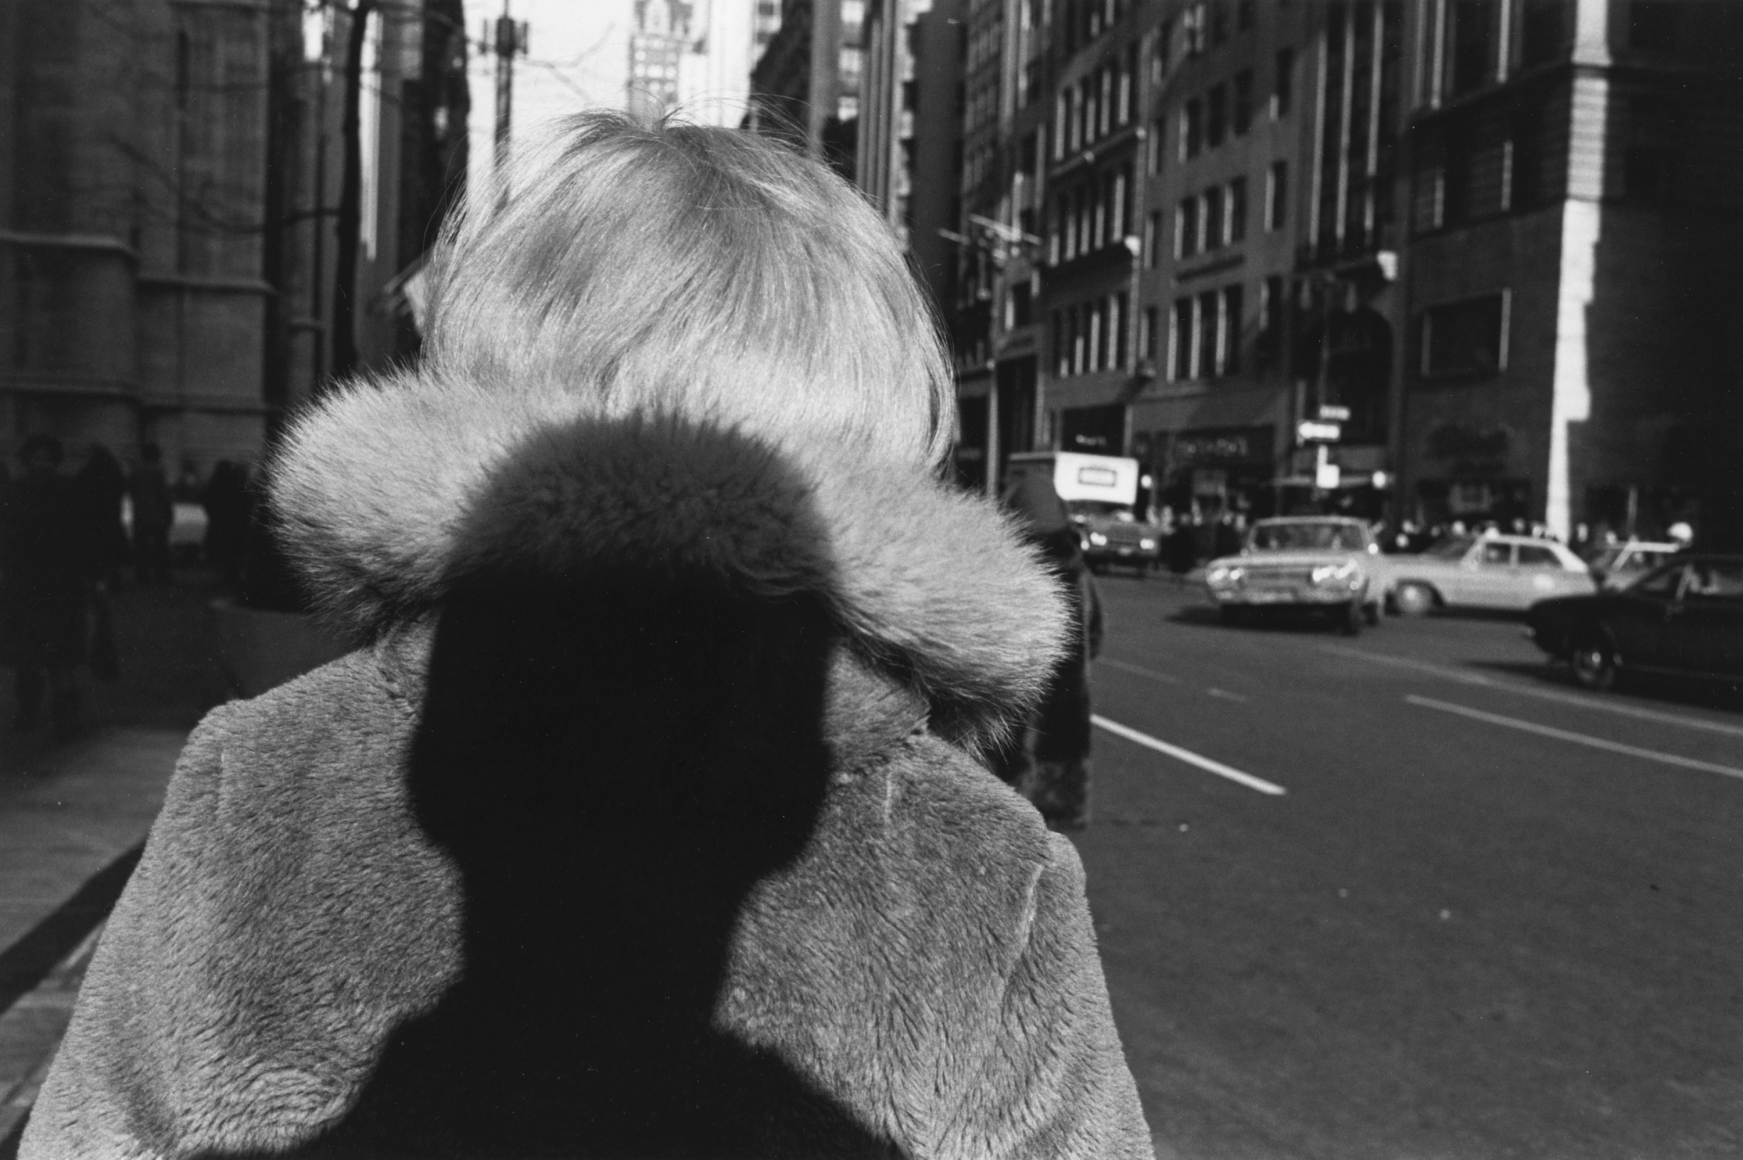 Lee Friedlander, Shadow—New York City, 1966